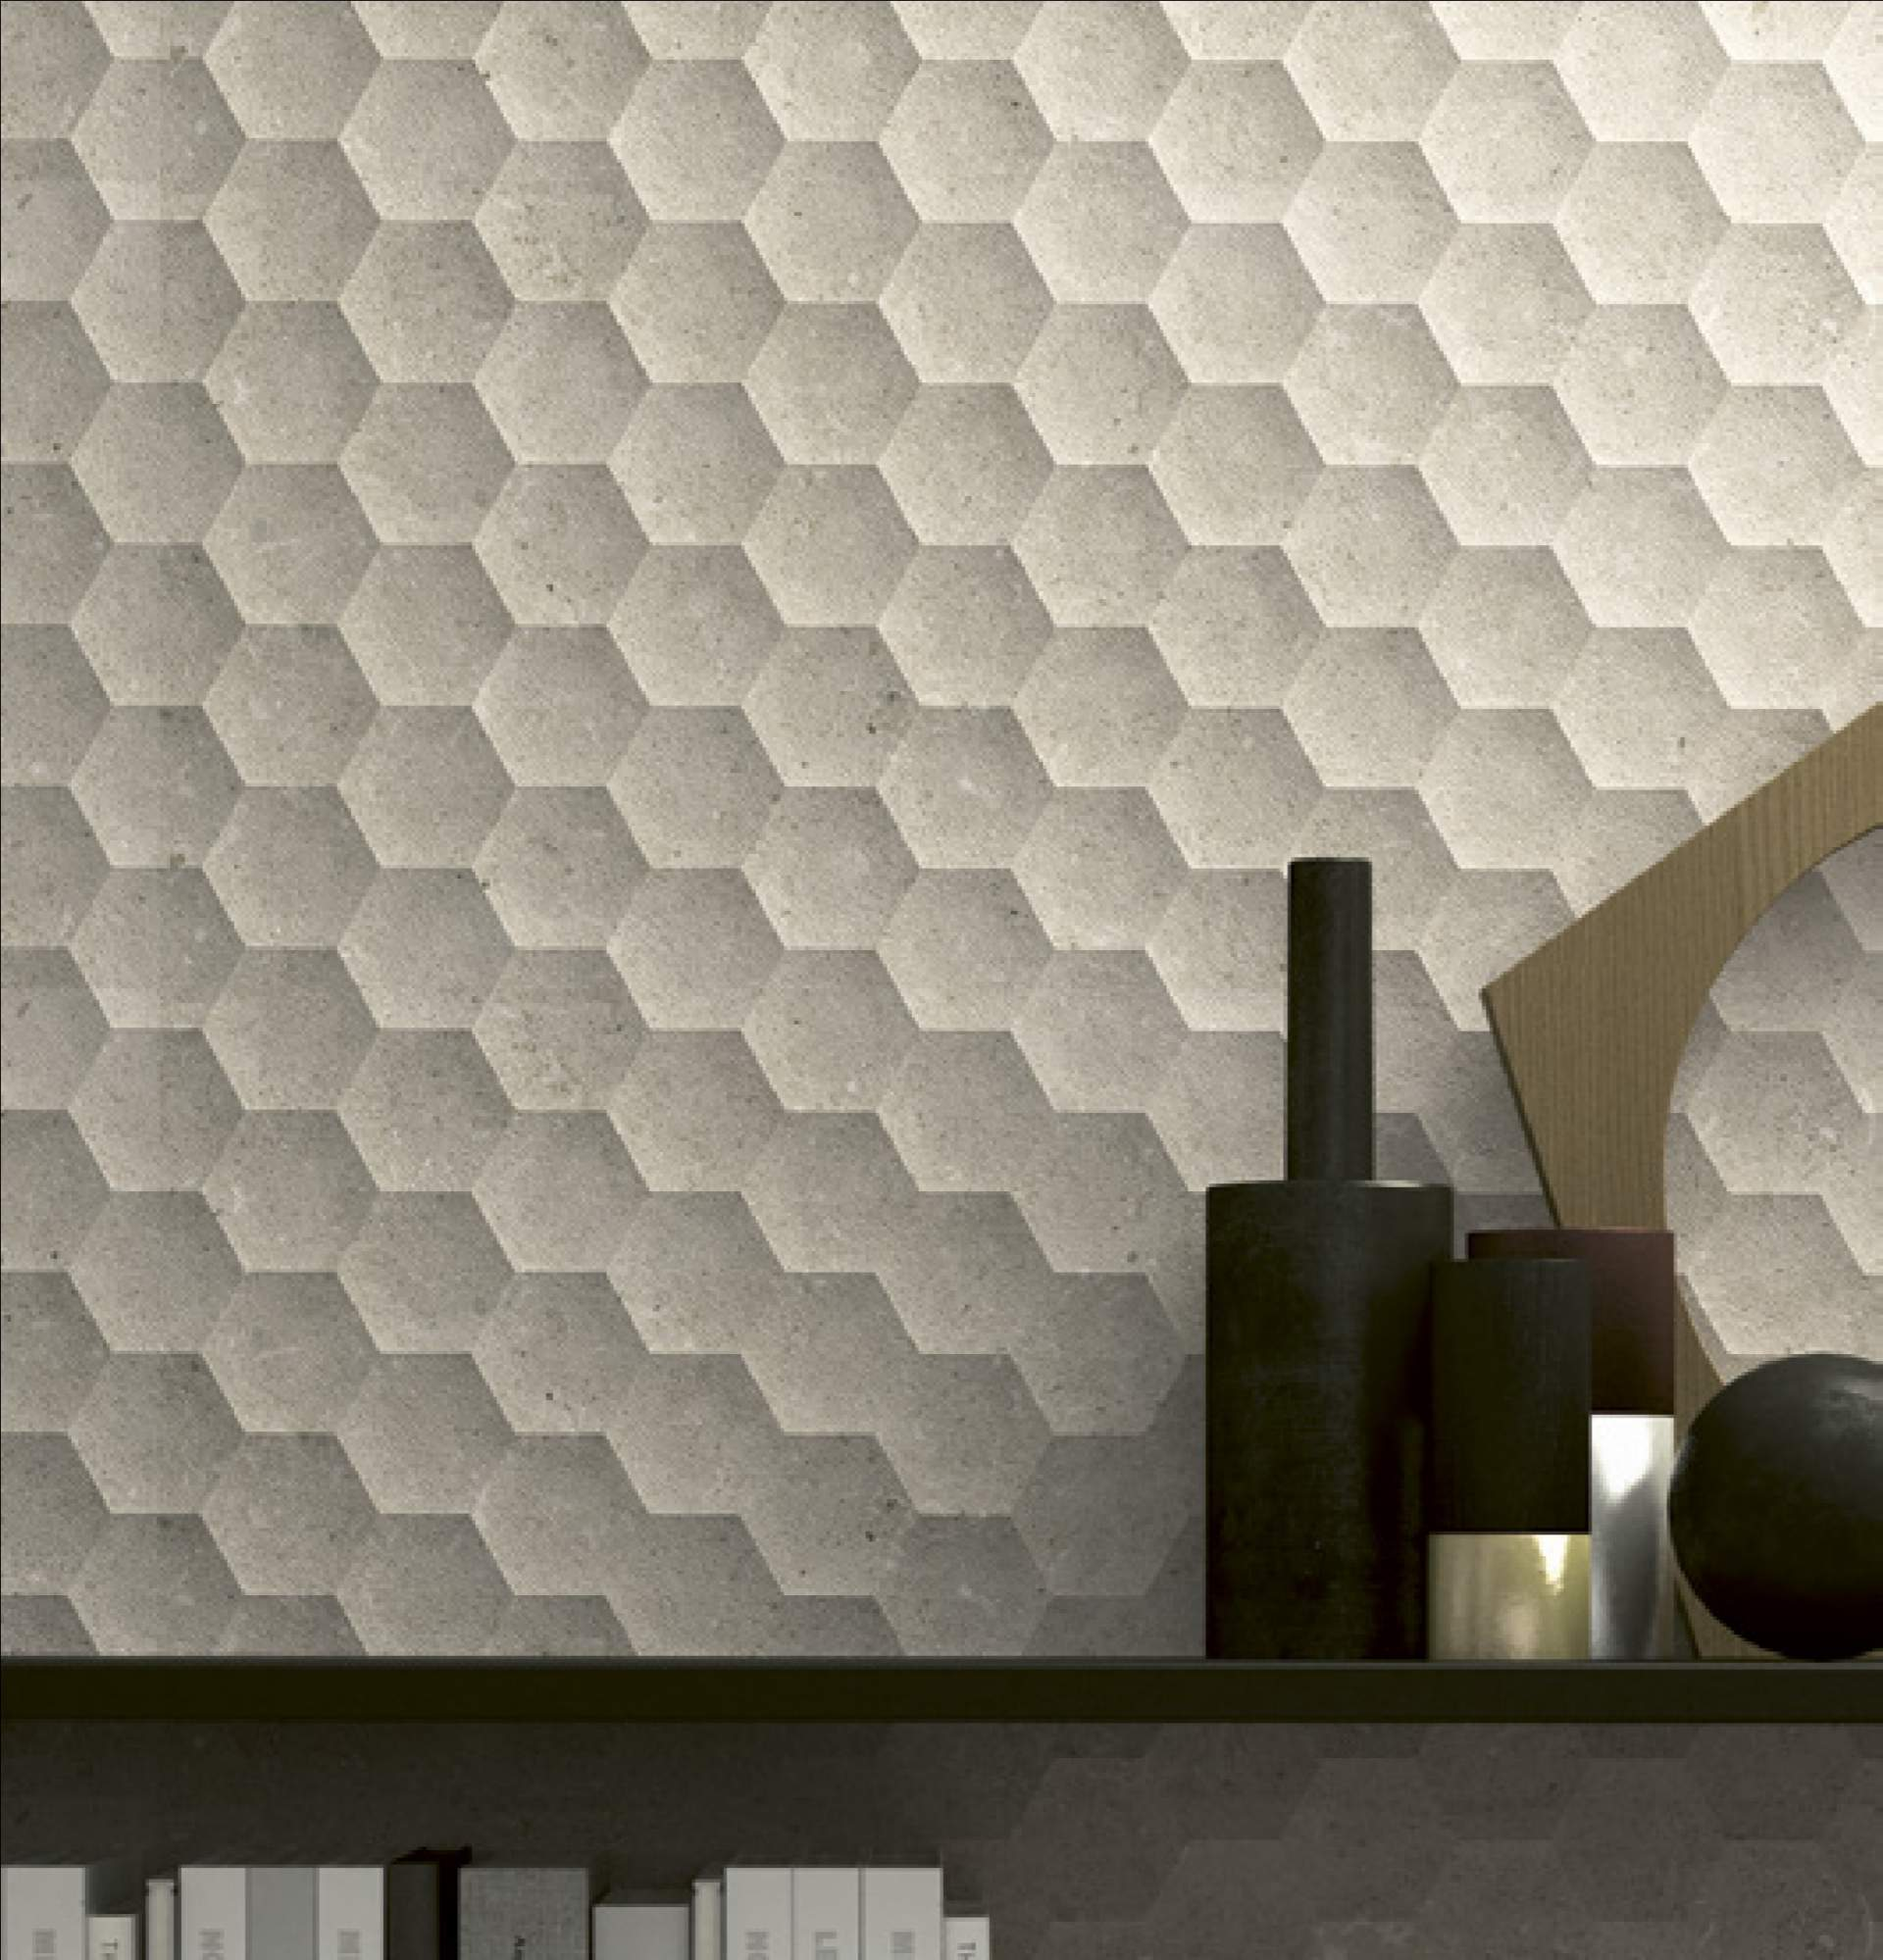 Stone Project Wall Tiles setting using Light Grey Six Tiles